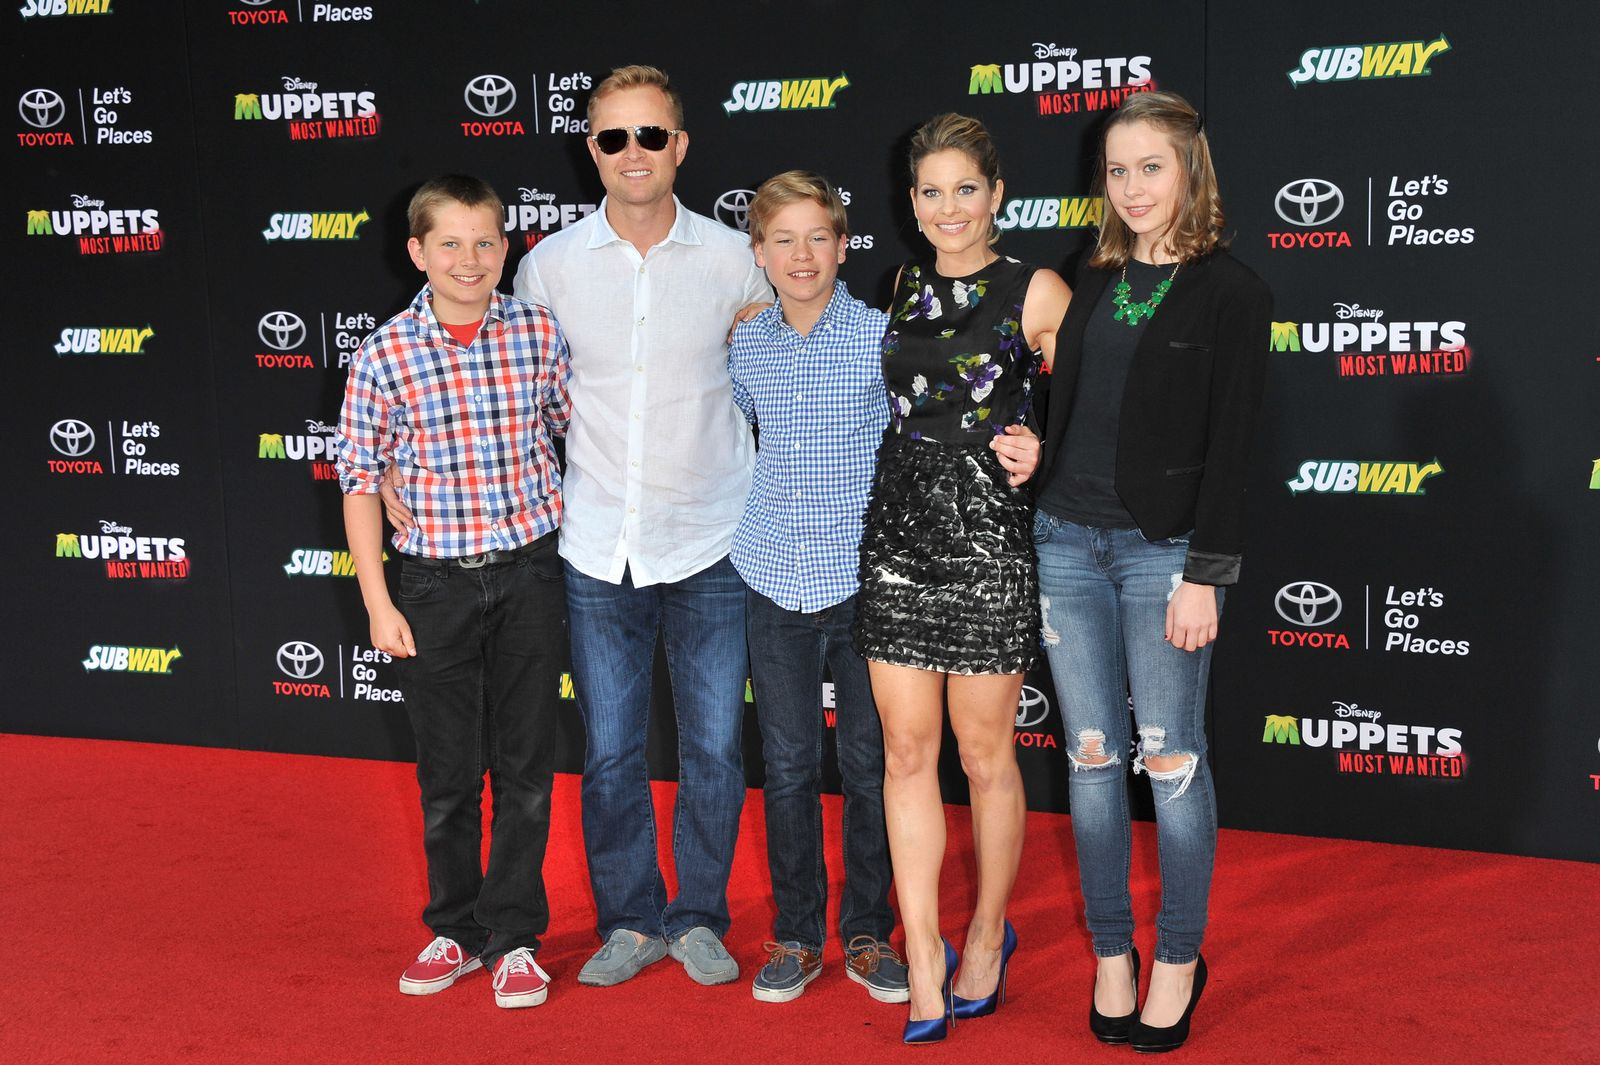 "Candace Cameron Bure and Valeri Bure arrive at the Los Angeles premiere of ""Muppets Most Wanted"" with their children on March 11, 2014, in Hollywood, California 